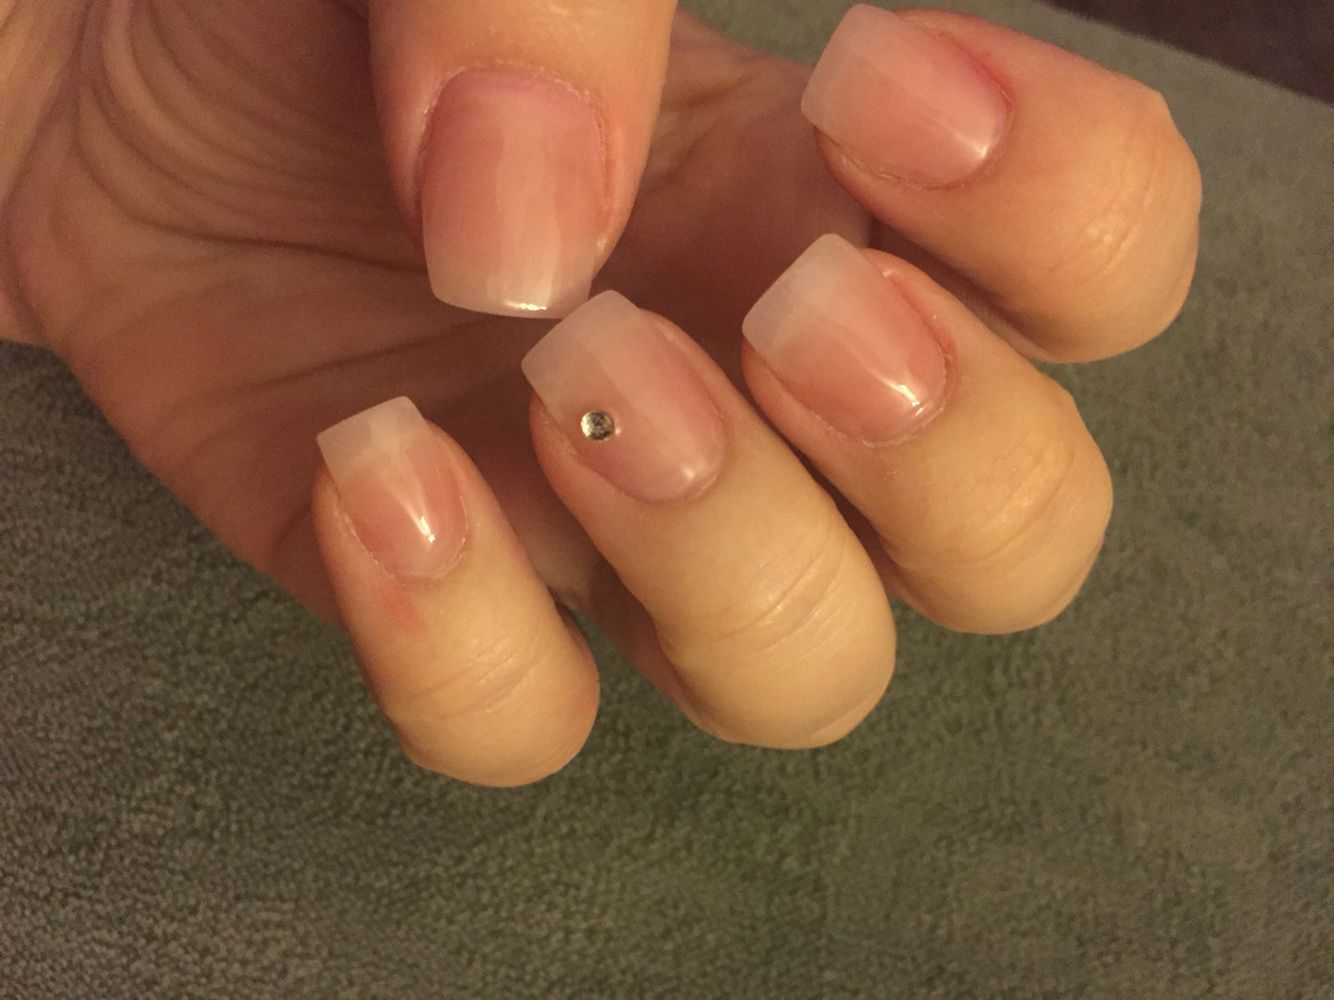 Light Pink Acrylic With Clear Gel Coat And Diamond Simple Natural Nails Natural Acrylic Nails Clear Gel Nails Pink Acrylic Nails